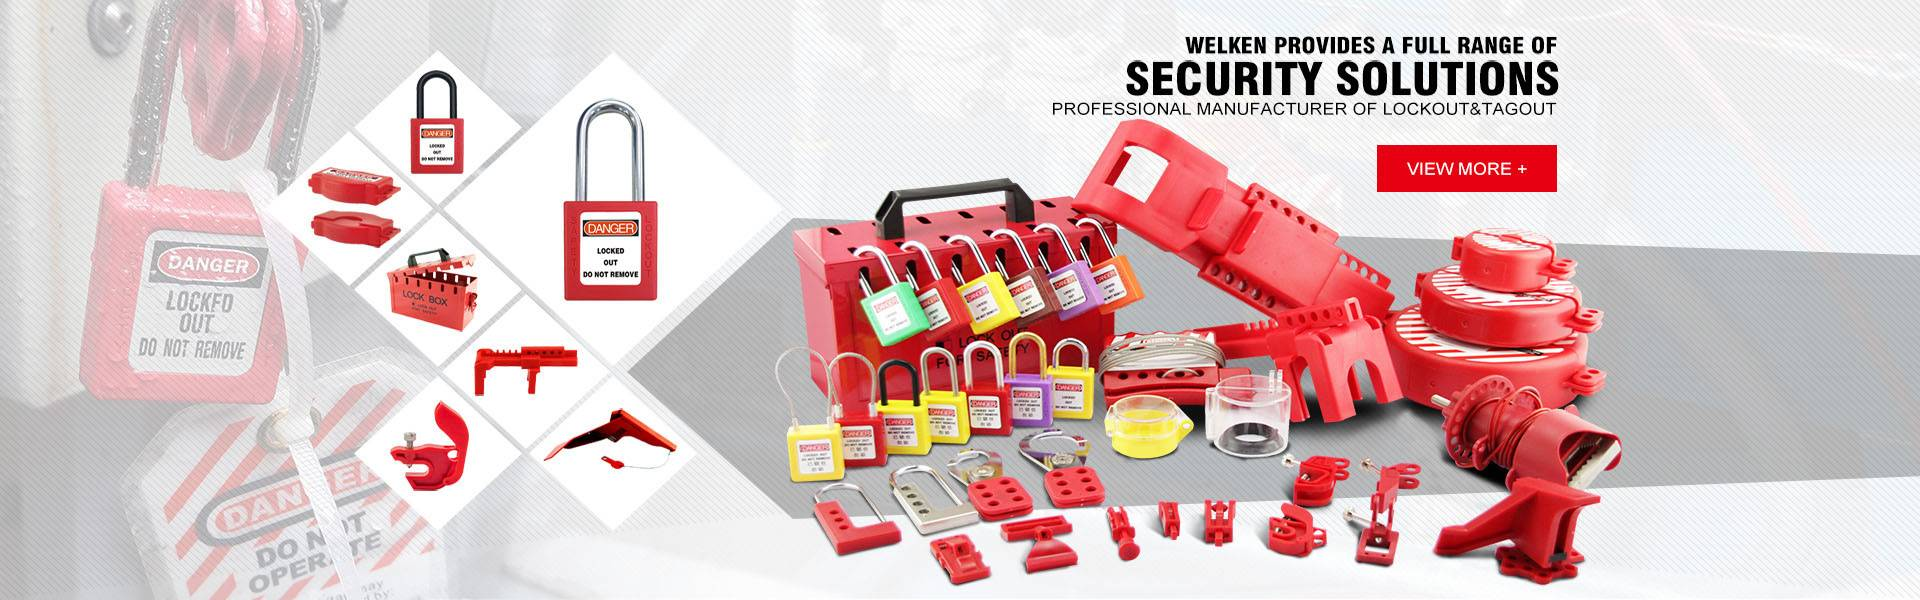 1 Lockout & Tagout